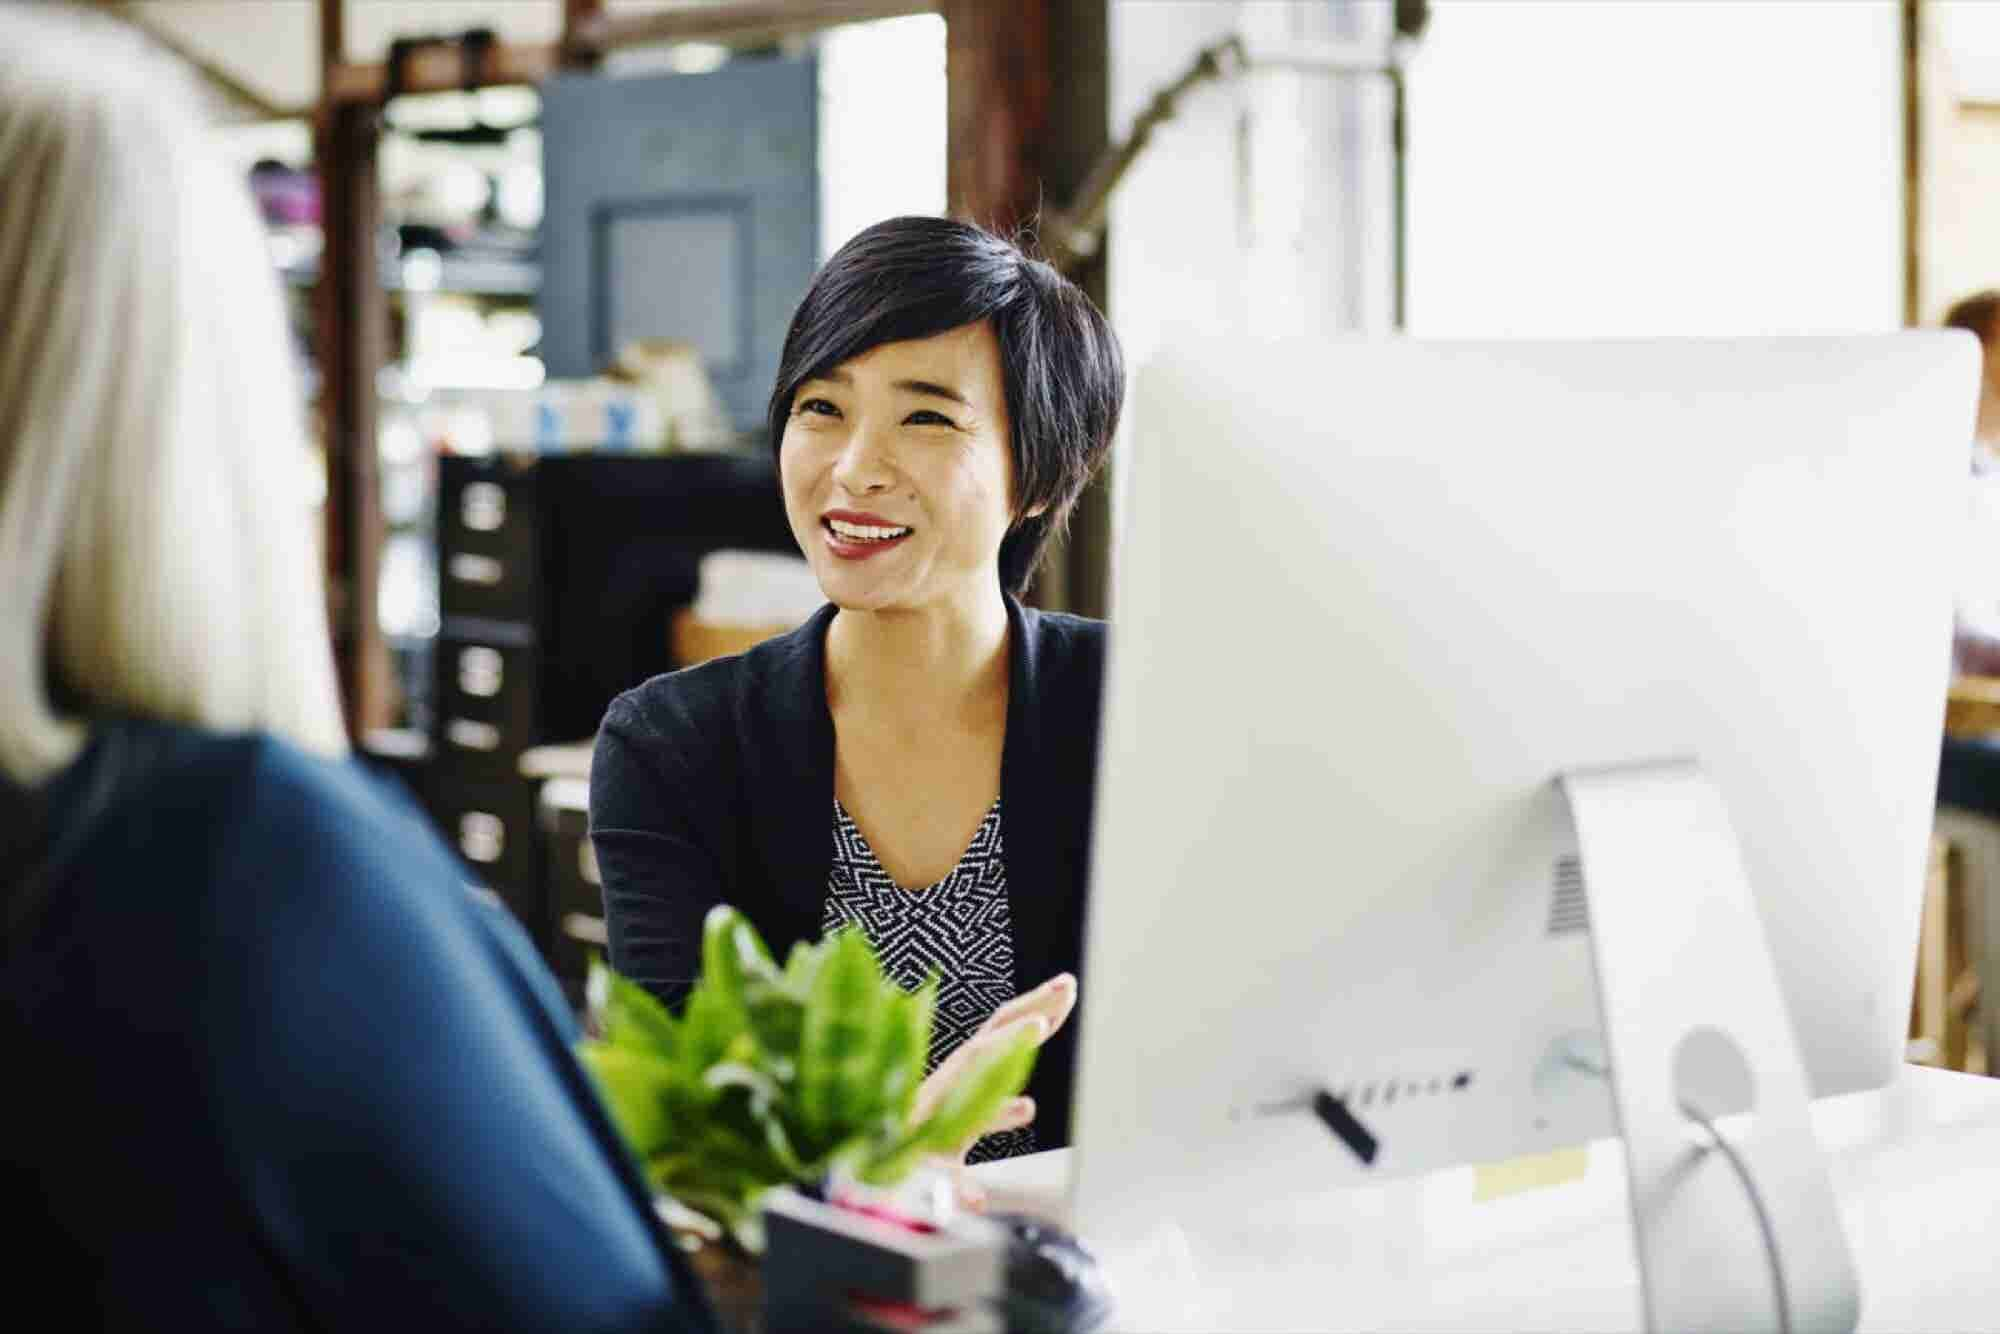 EQ Experts Tell Entrepreneurs to Do These 4 Things to Stay Relevant and Be an Effective Leader